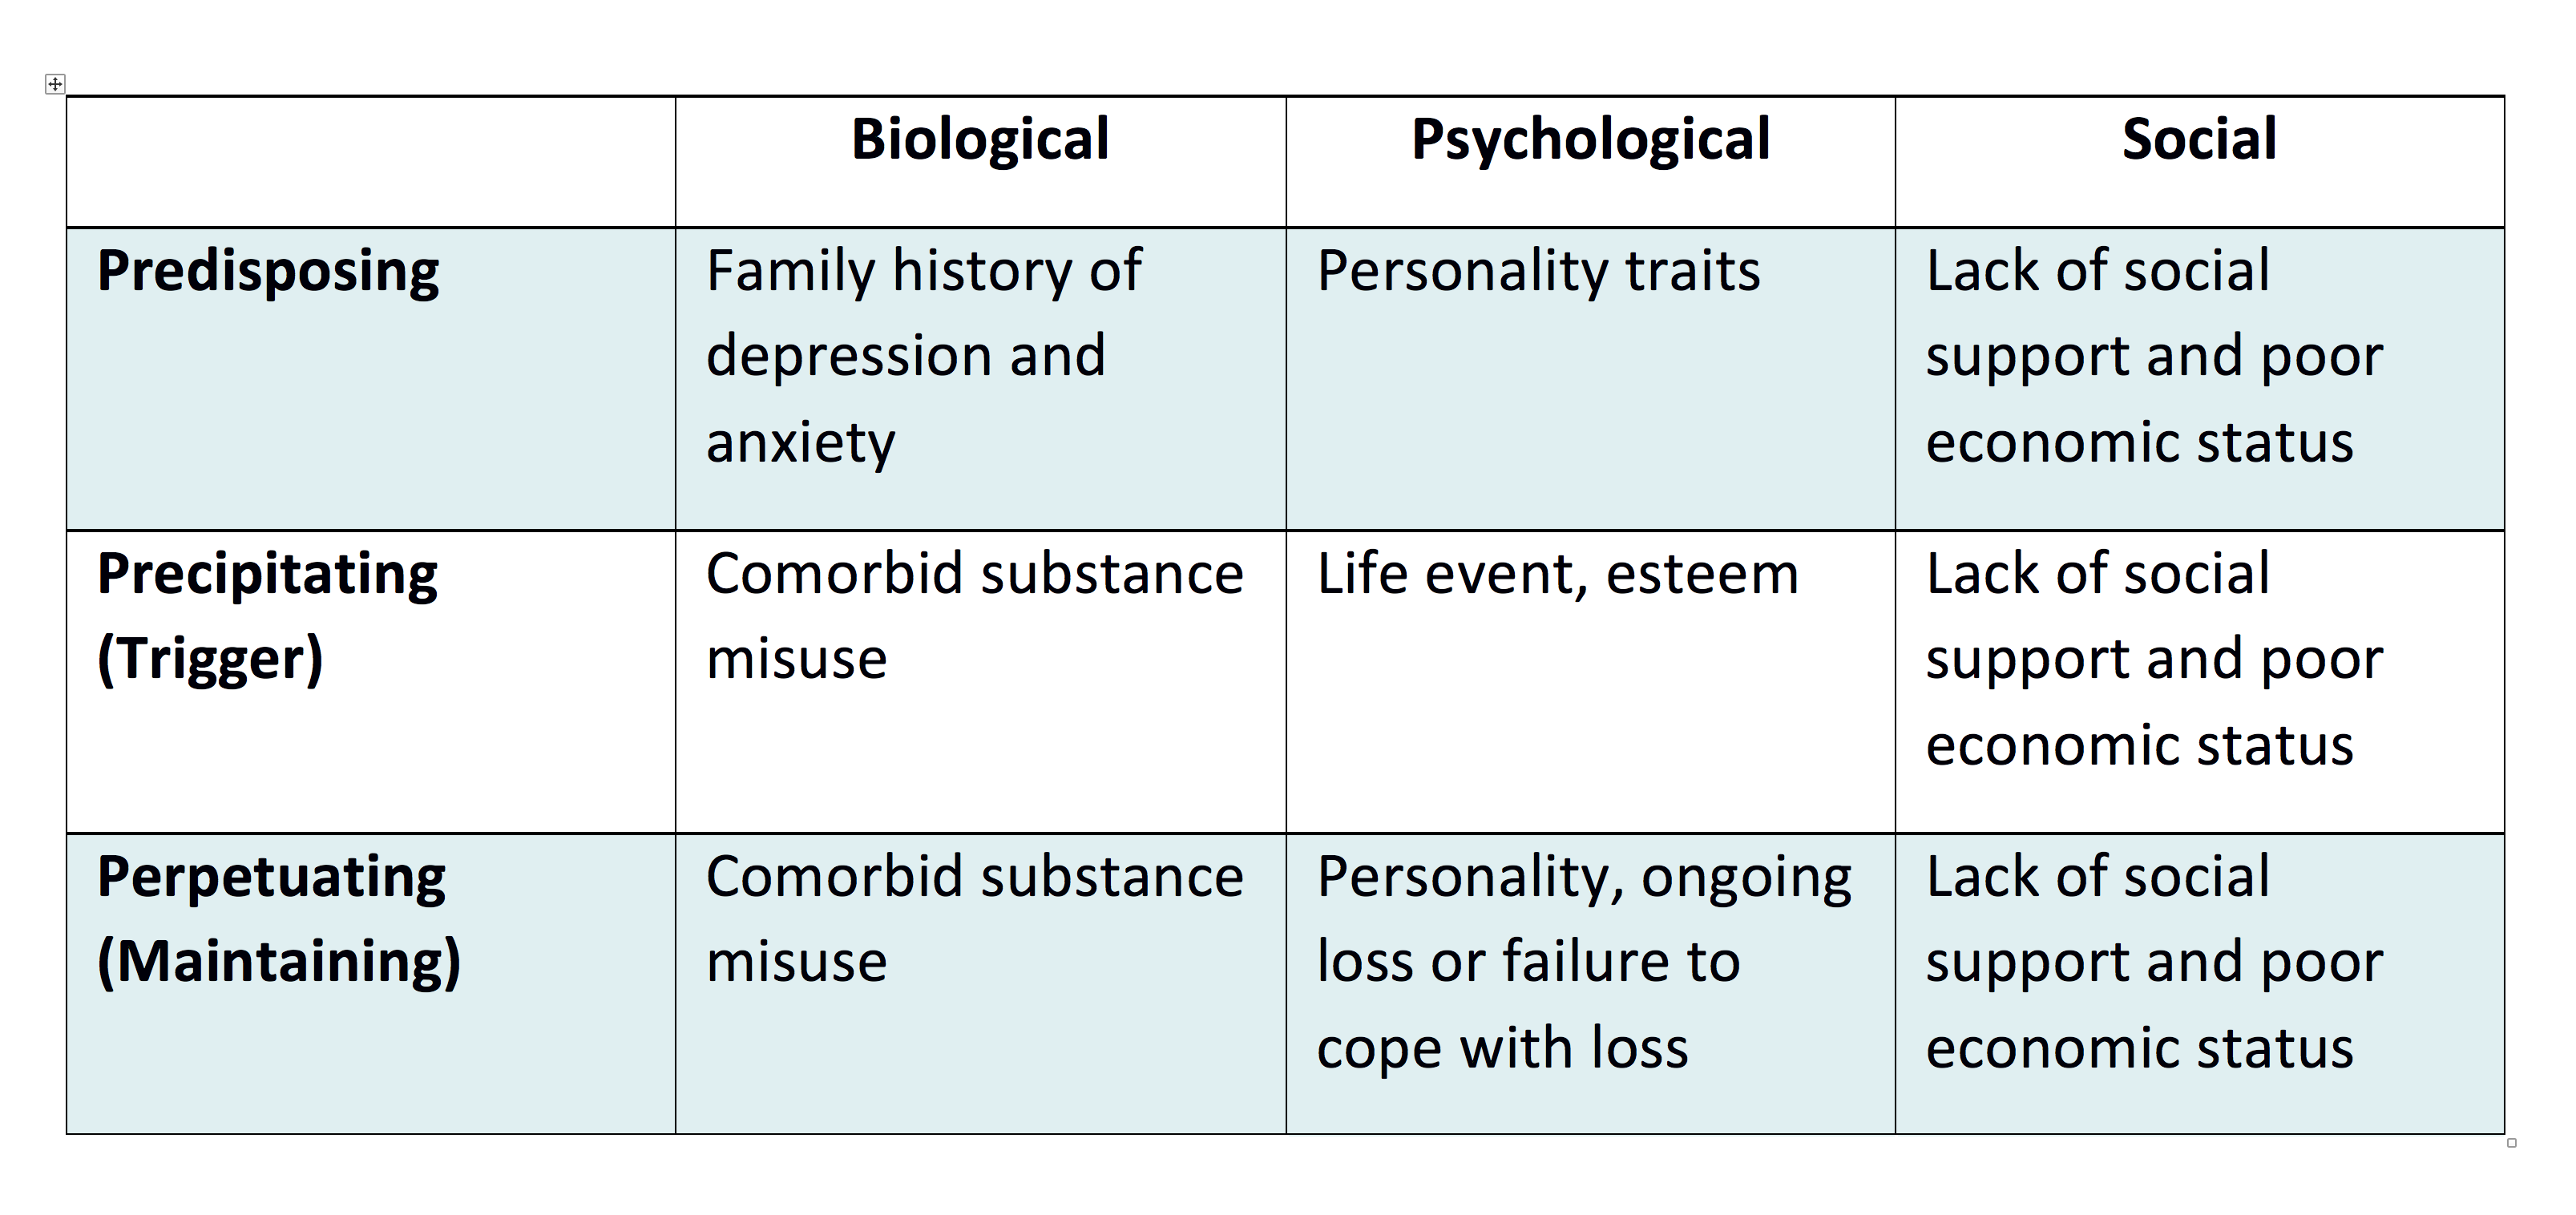 psychology biological depression Types of depression depressive disorders come in different forms, just as is the case with other illnesses such as heart disease this pamphlet briefly describes three of the most common types of depressive disorders.